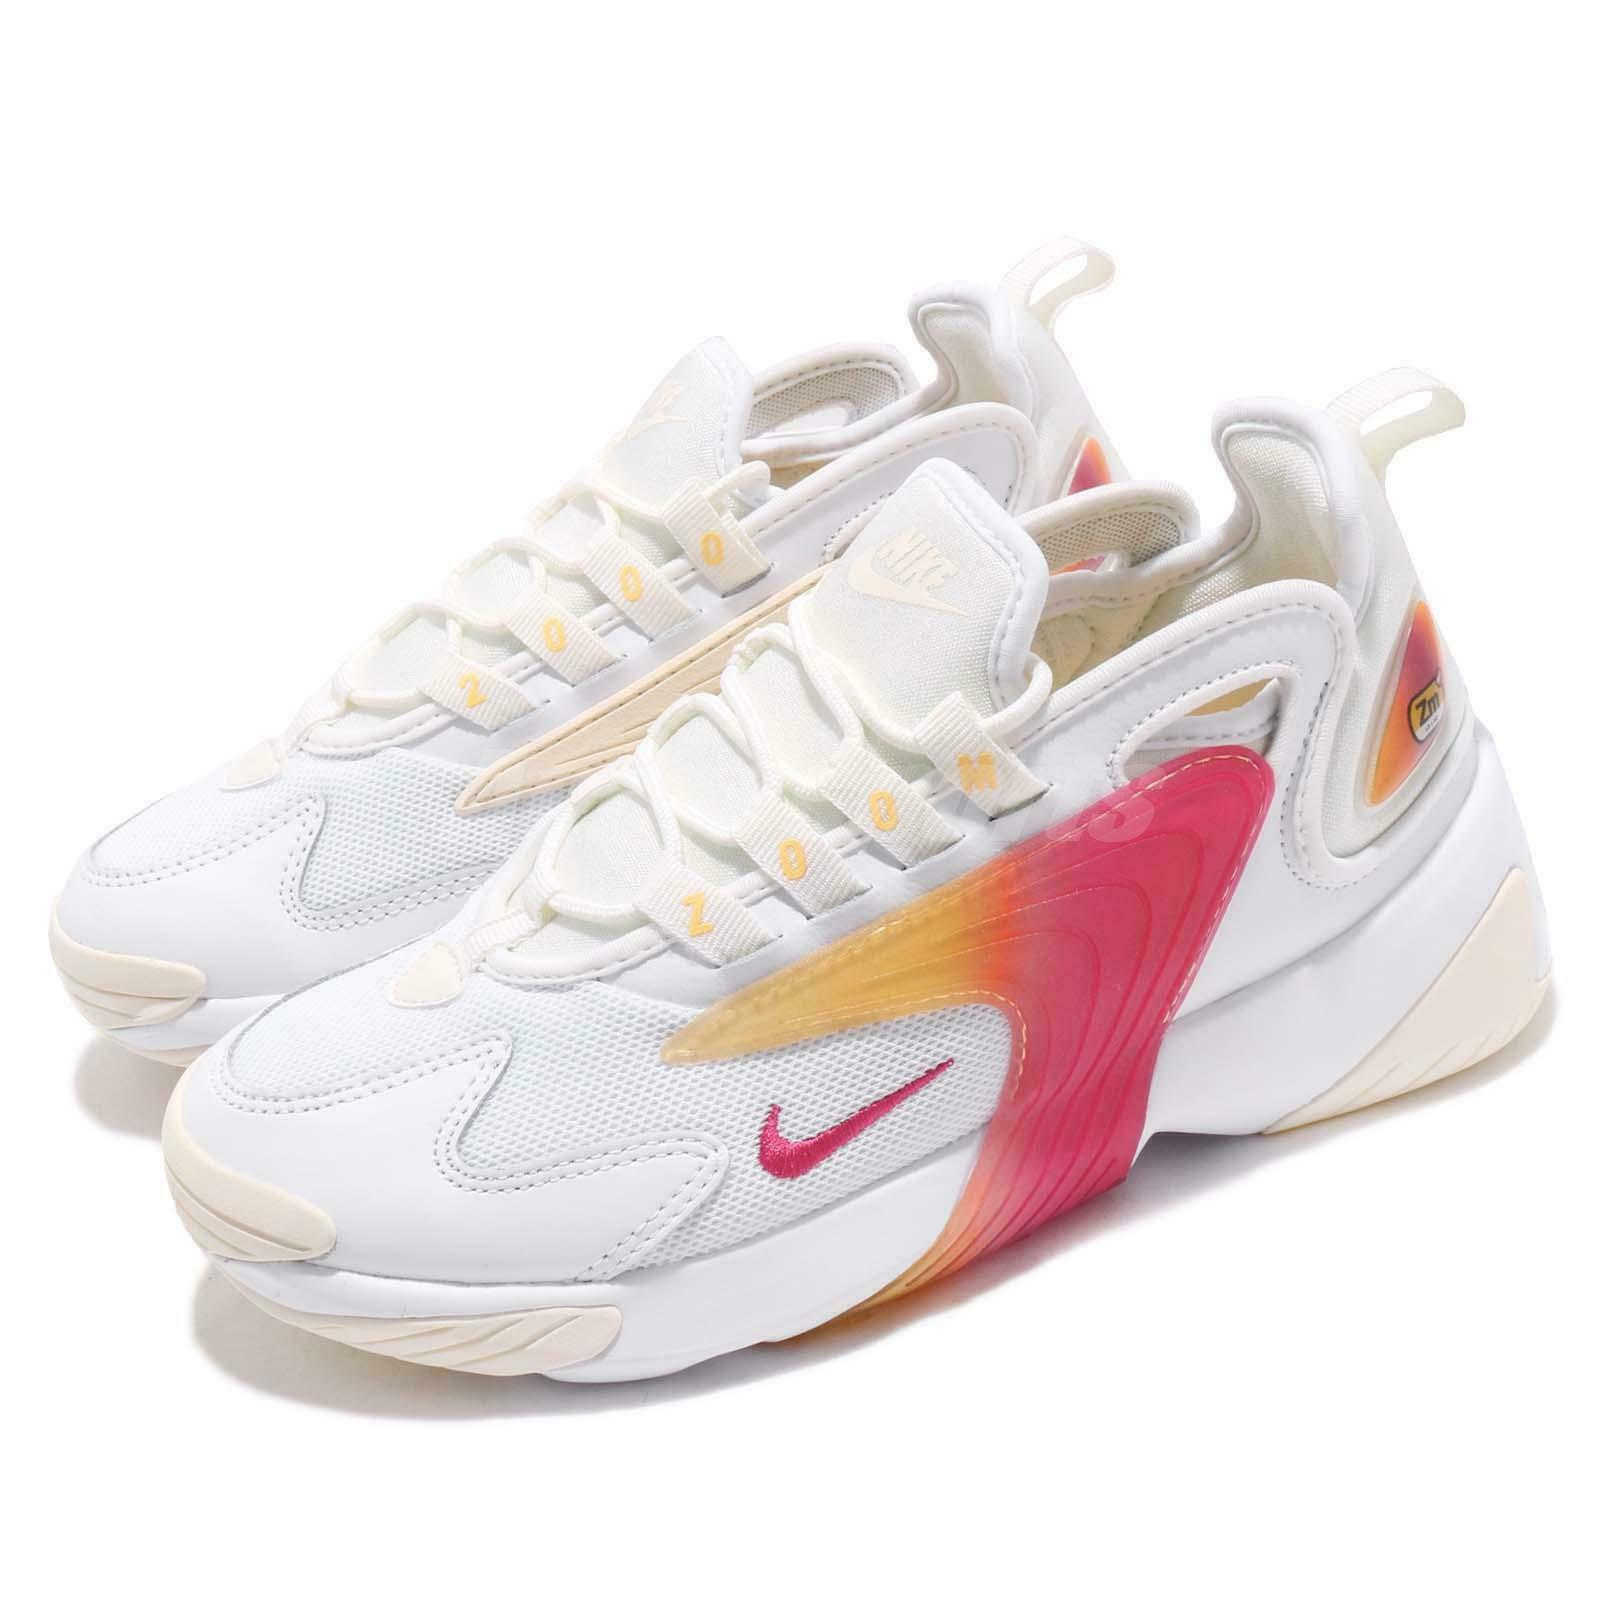 Nike Wmns Zoom 2K White Rush Pink Sail  Womens Running shoes Sneakers AO0354-102  good price